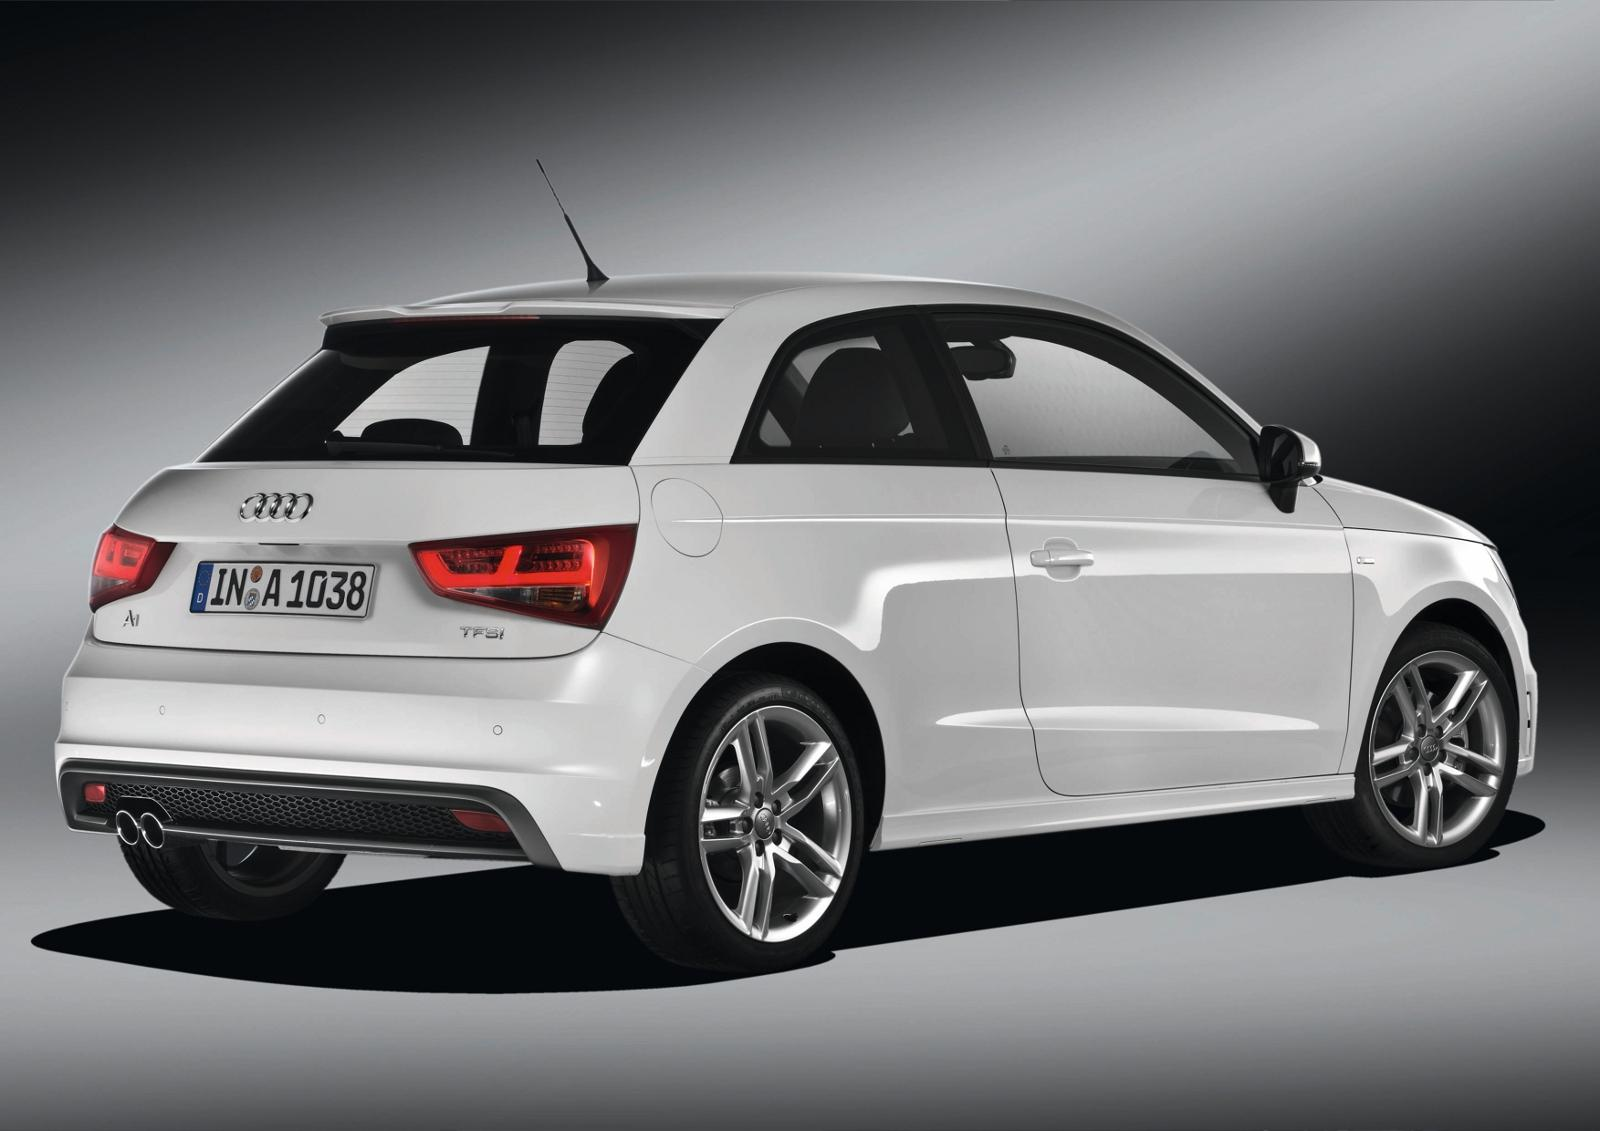 audi a1 1 4 tfsi s line technical details history photos. Black Bedroom Furniture Sets. Home Design Ideas